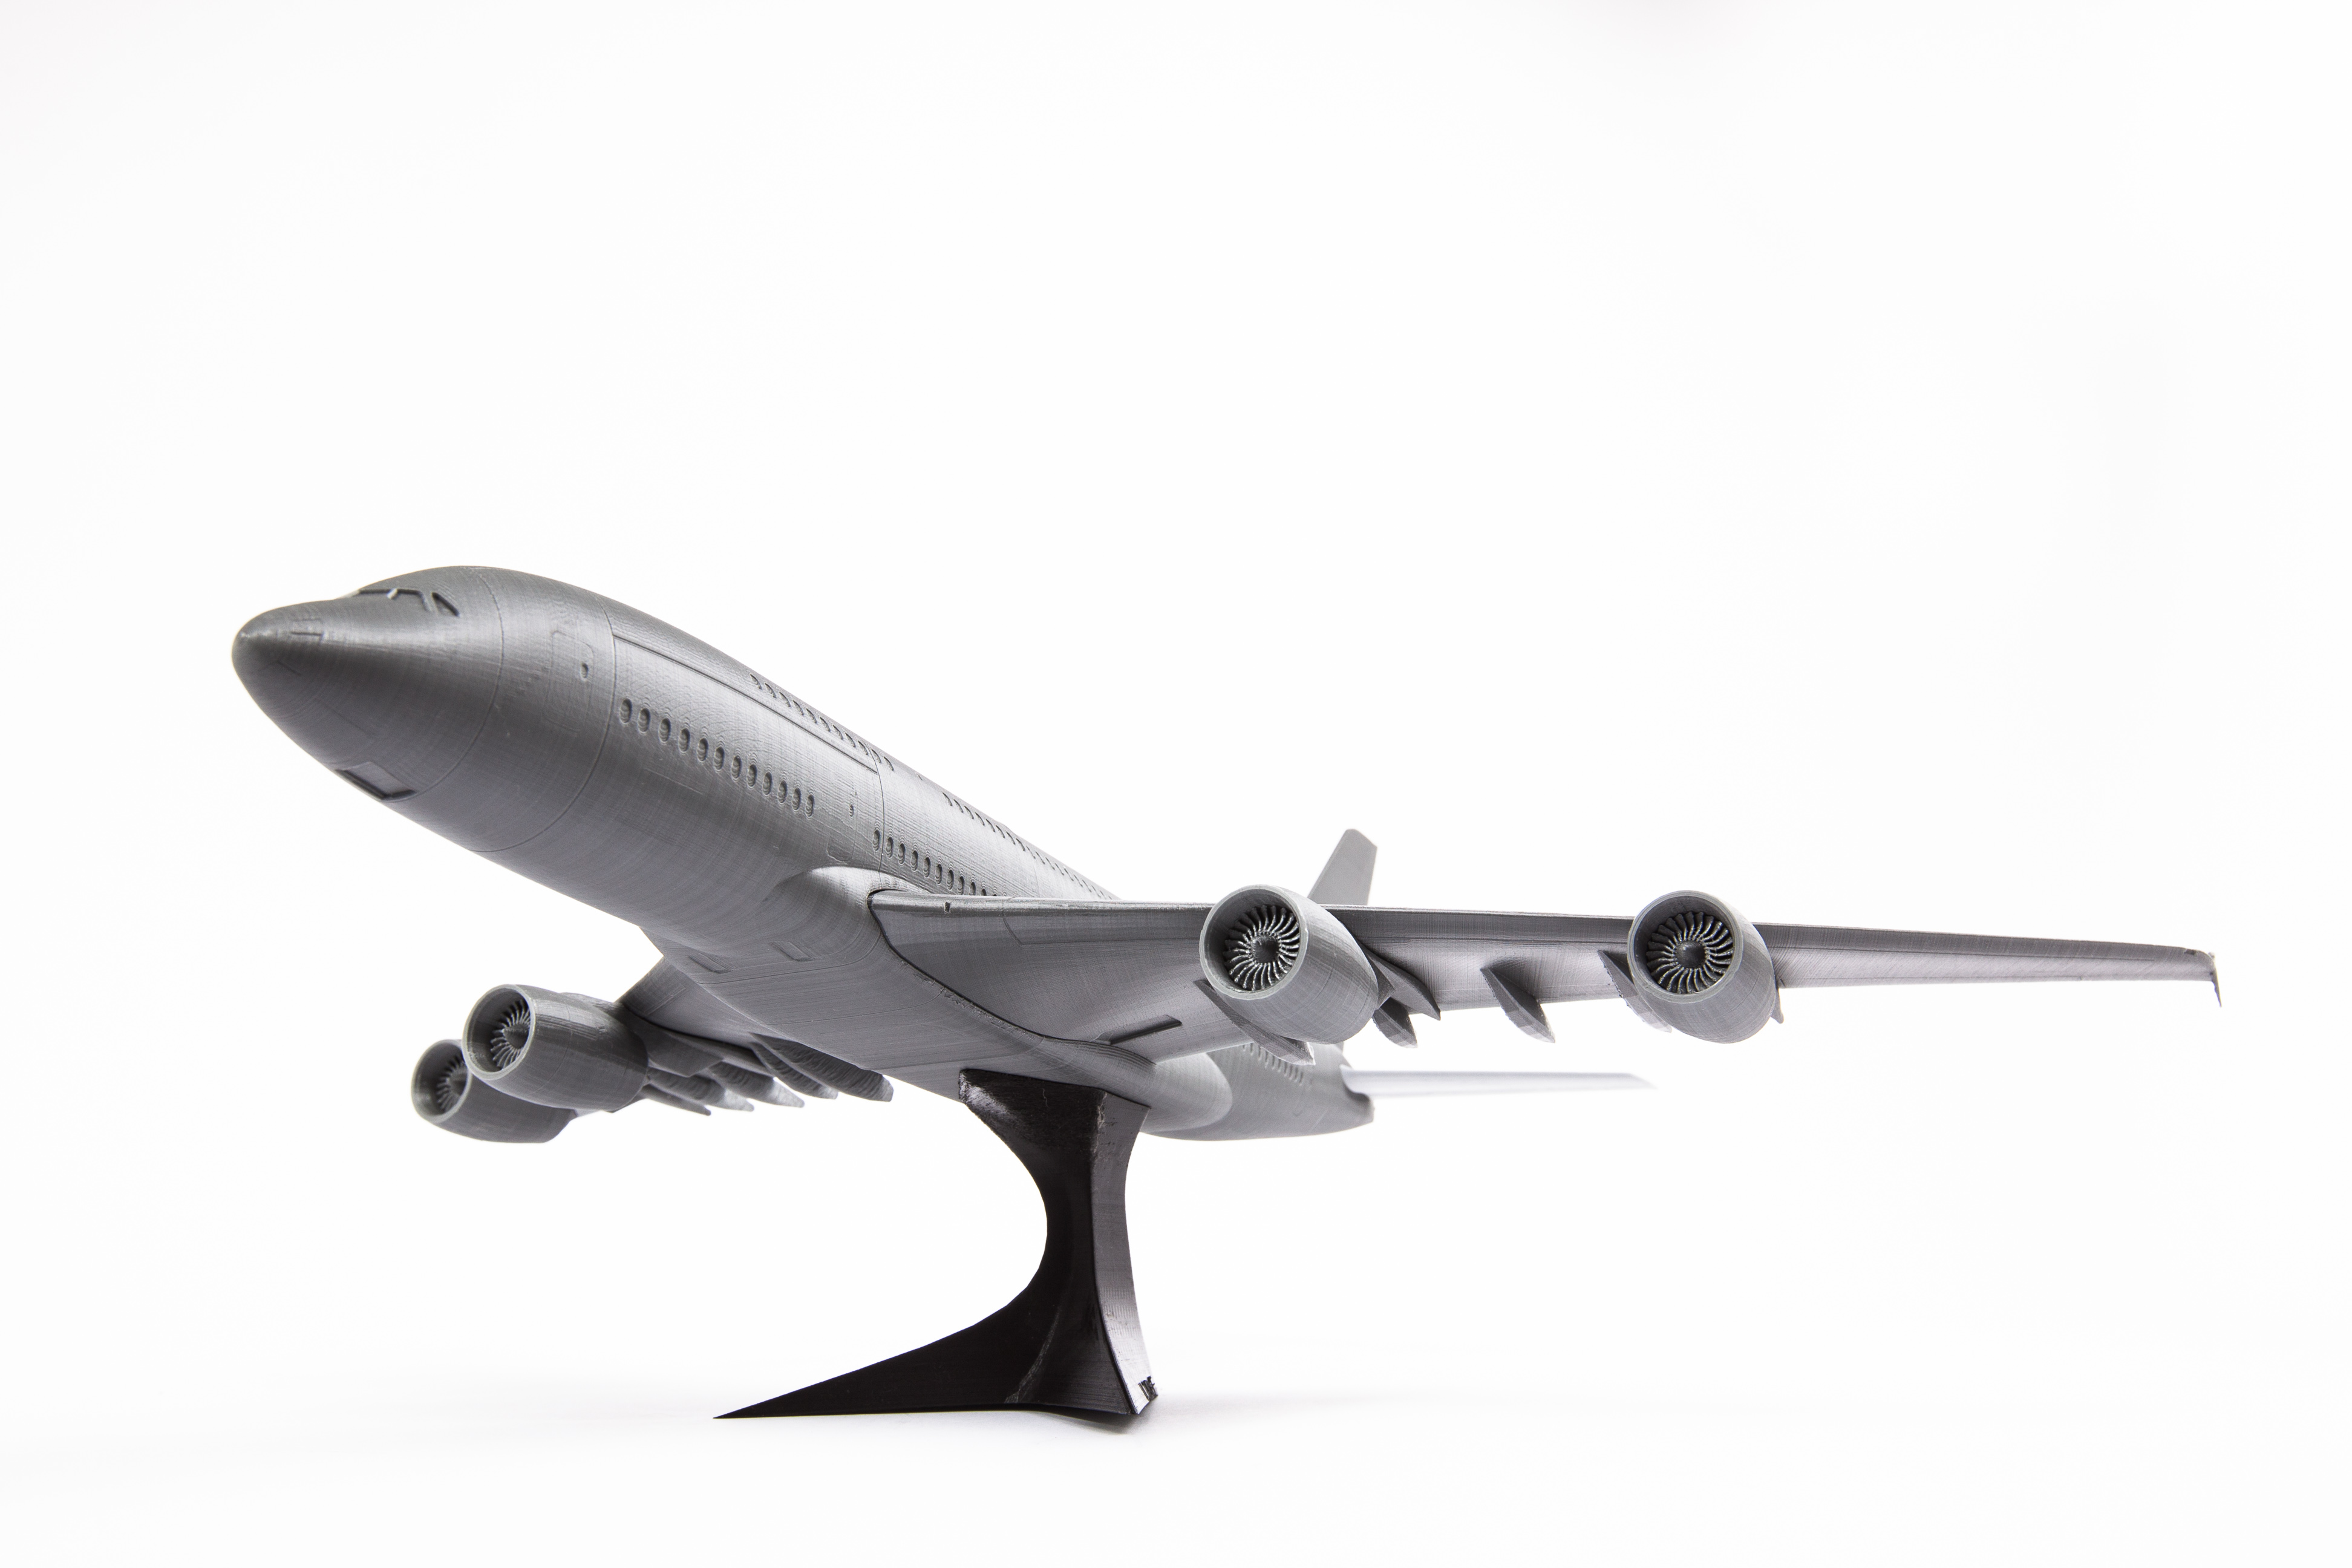 Airplane model | Professional 3D printing made accessible | Ultimaker